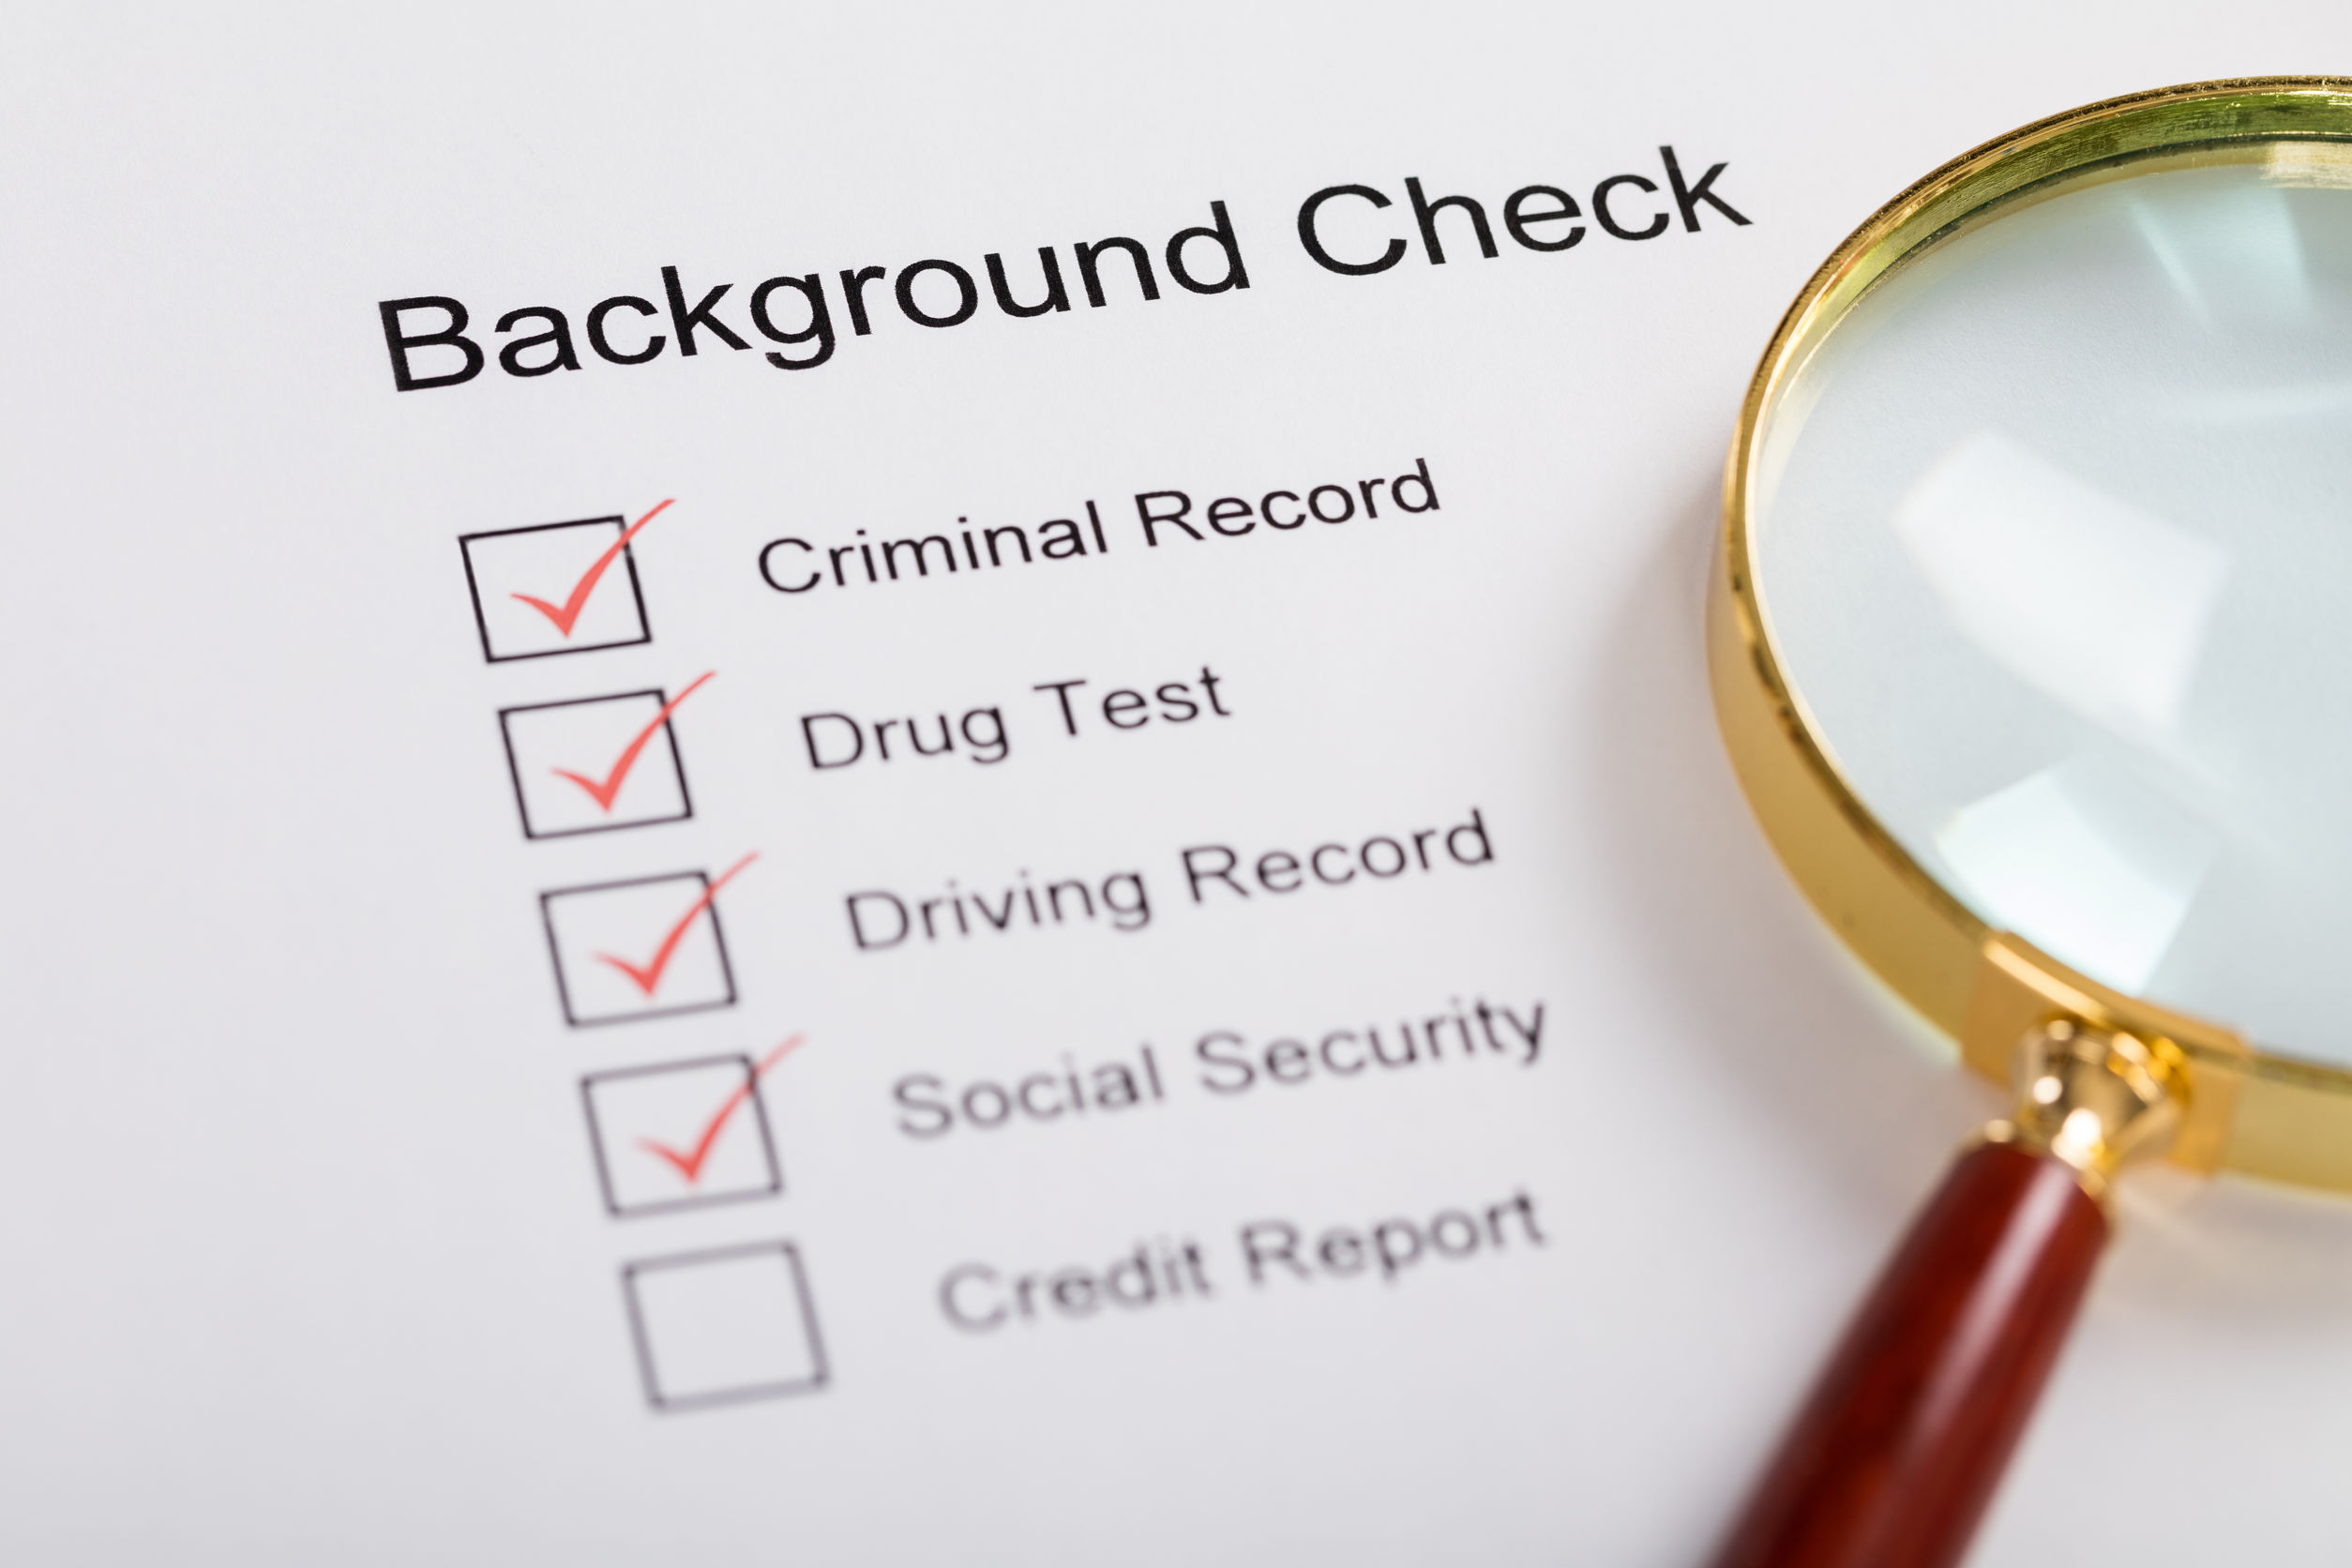 The real story behind 4 background check myths